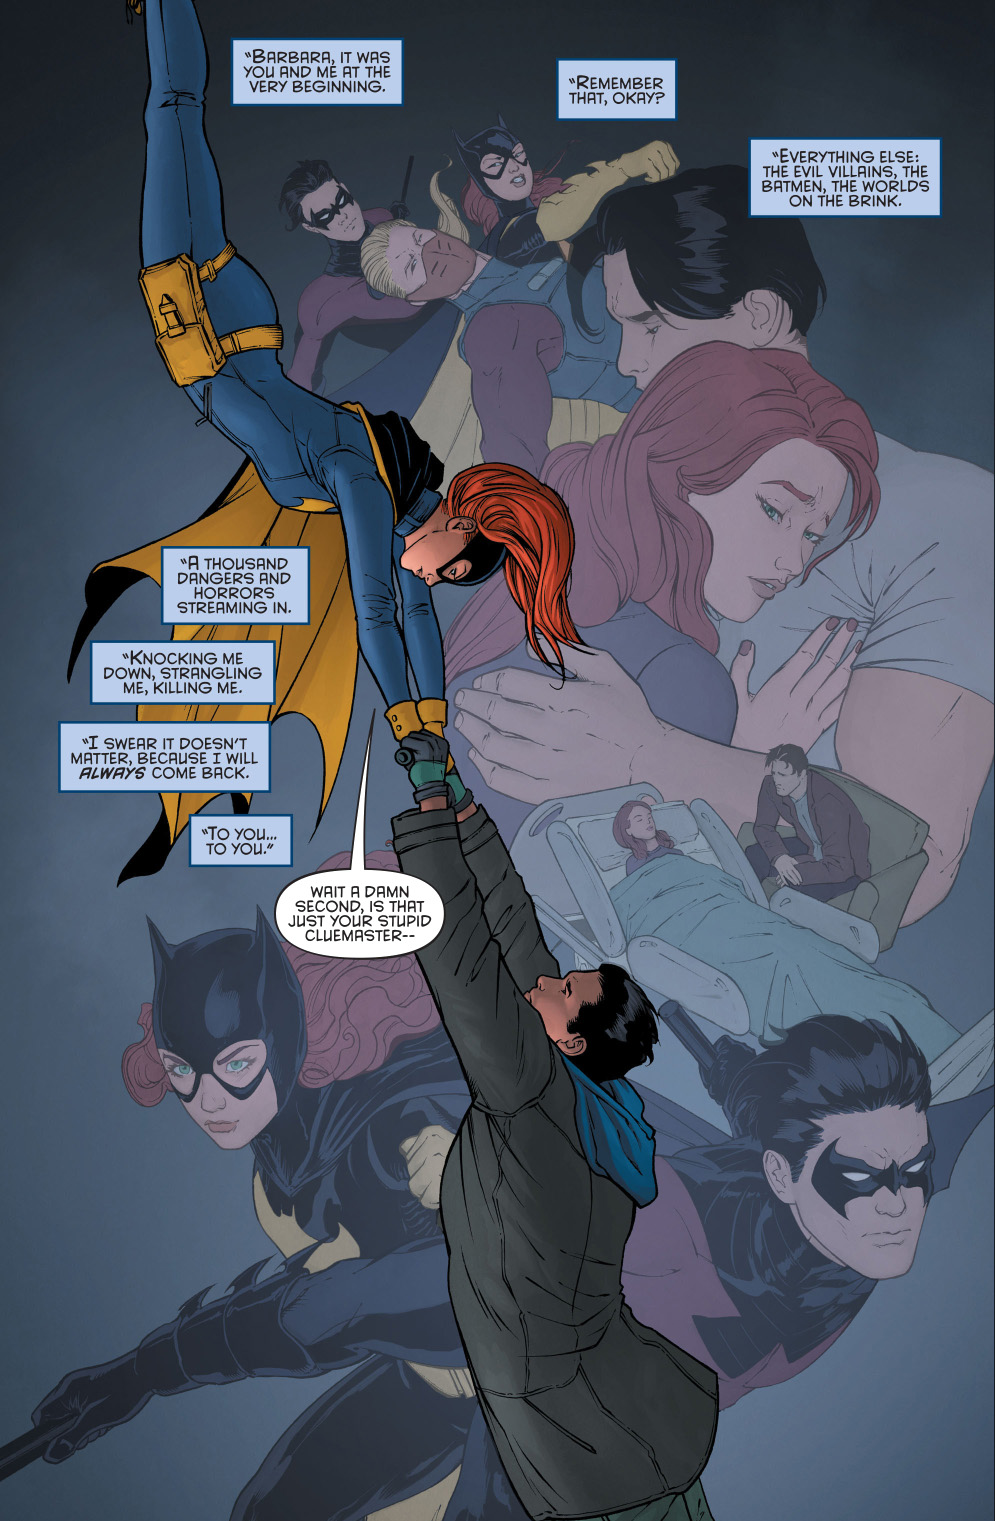 ... death to batgirl dick grayson meets bruce wayne with amnesia